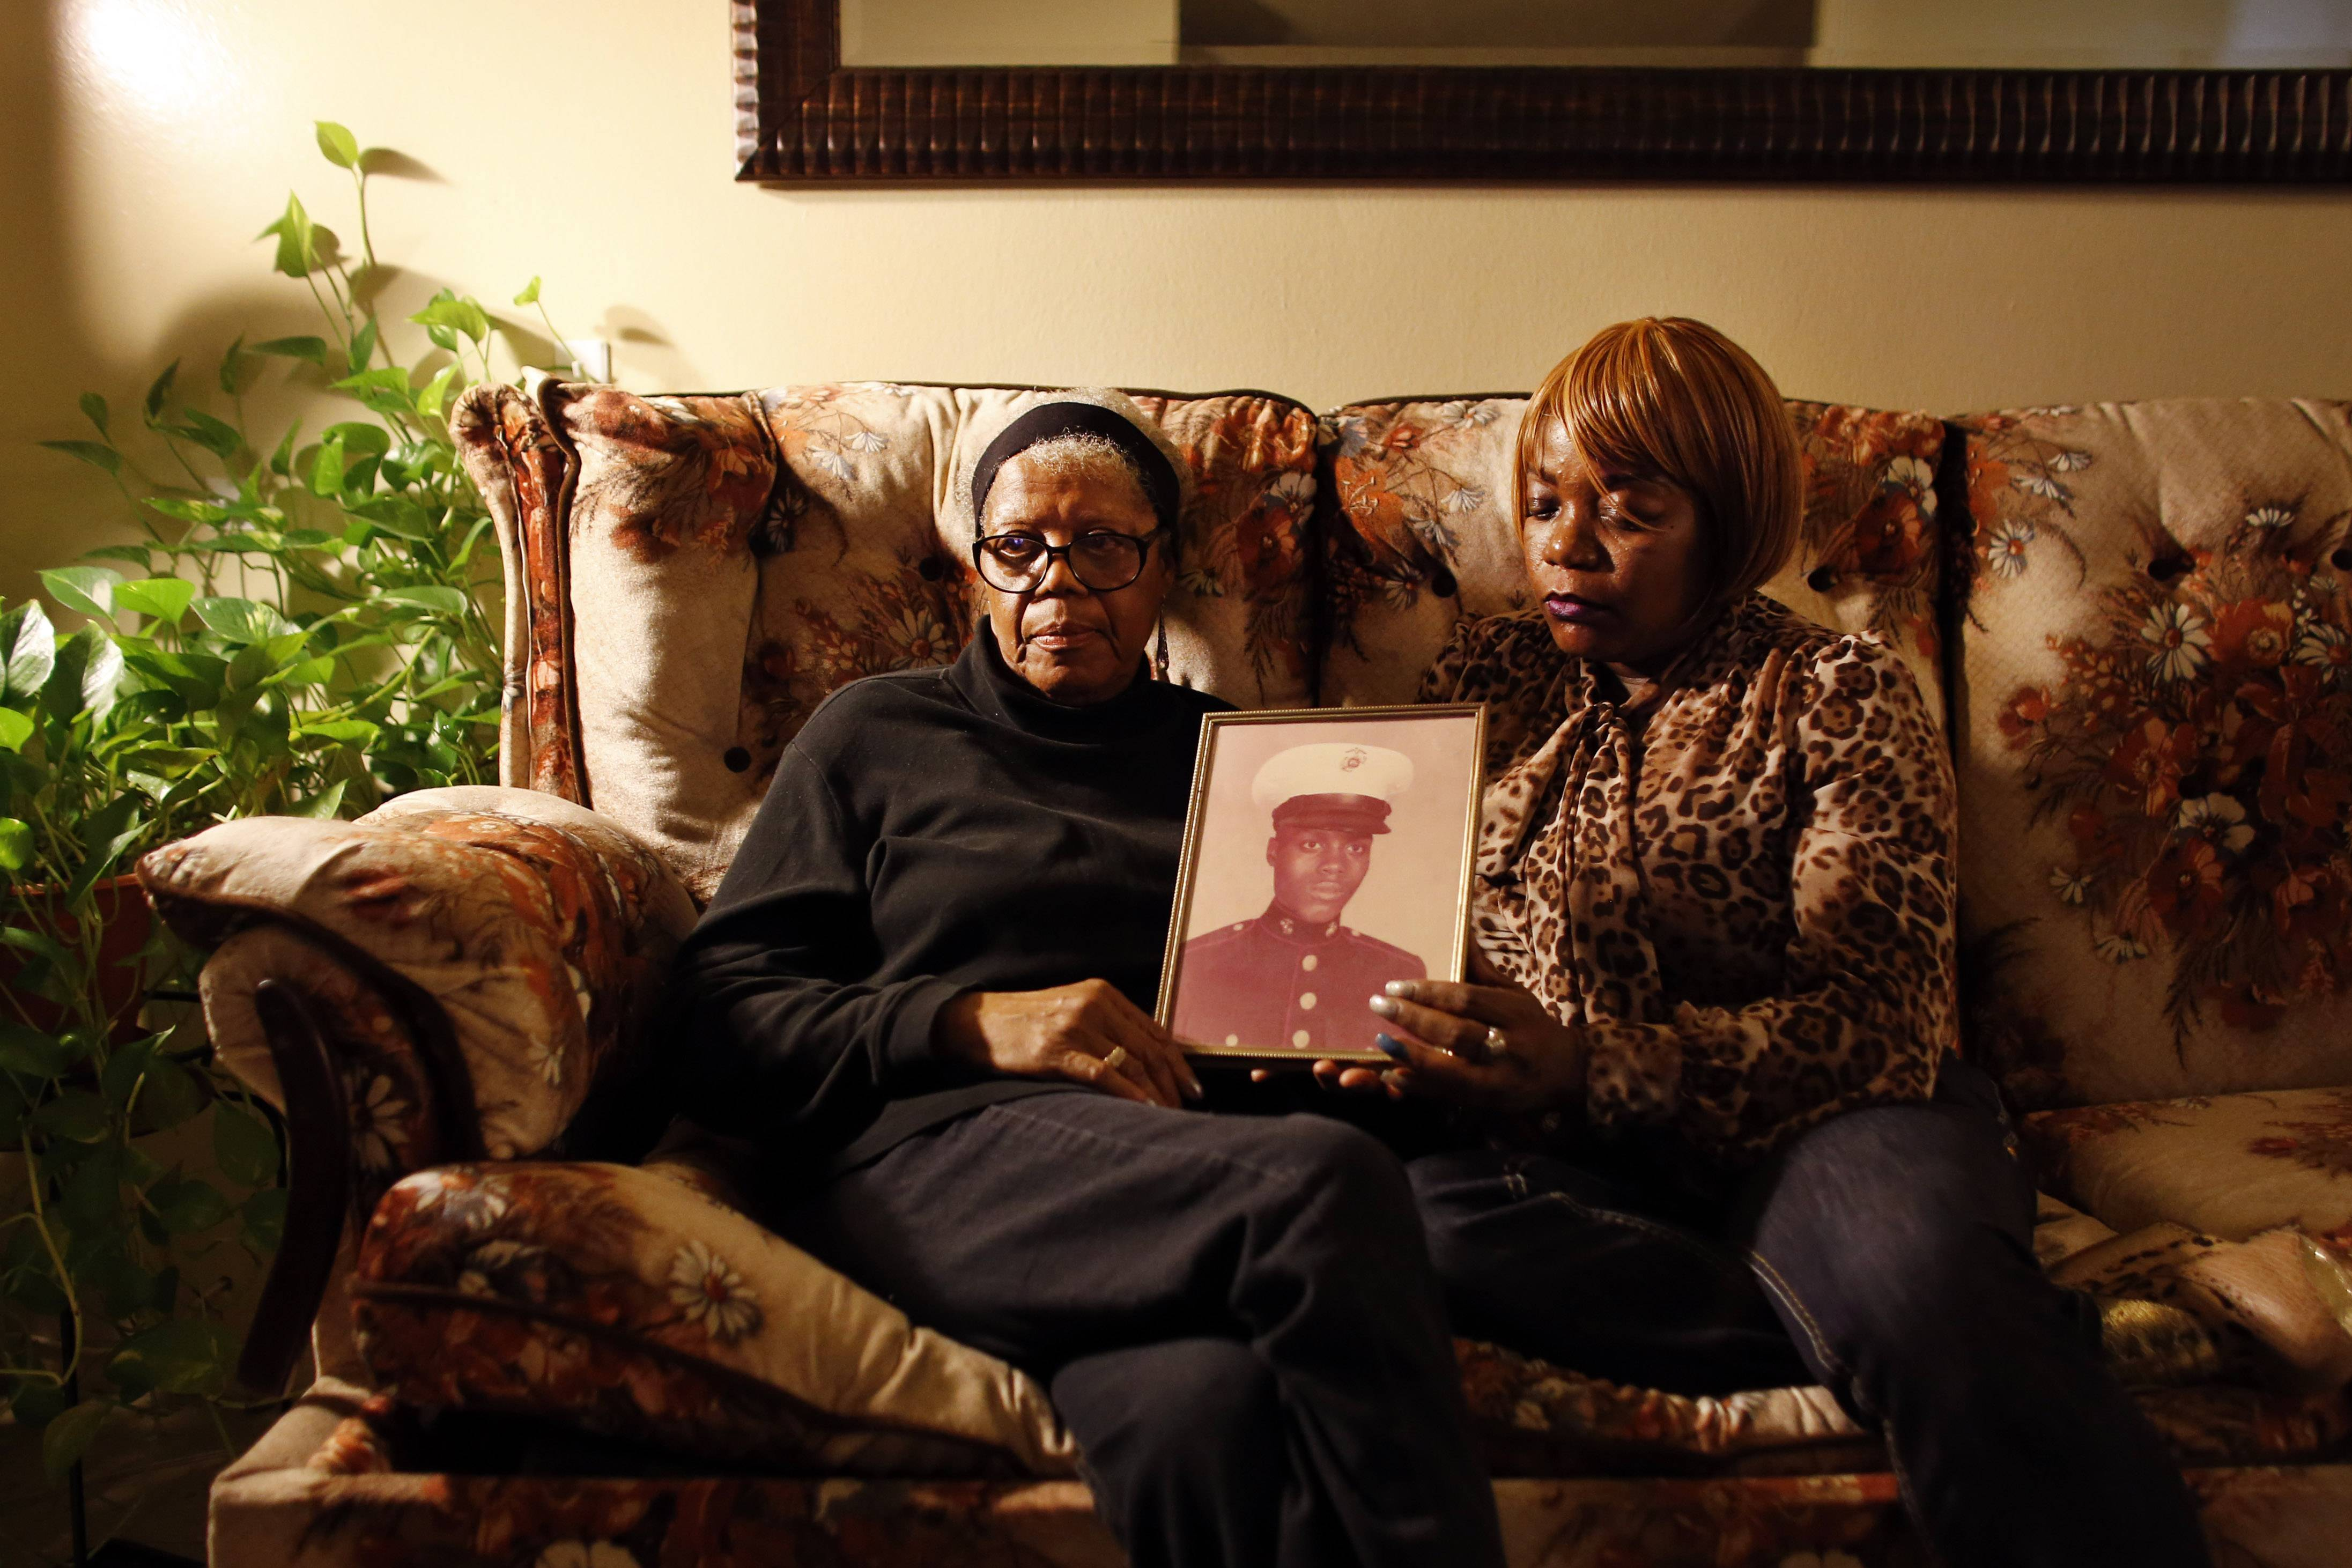 Alma Murdough and her daughter Cheryl Warner hold a photo of Murdough's son, at her home in the Queens borough of New York. Jerome Murdough, a mentally ill, homeless former Marine arrested for sleeping in the roof landing of a New York City public housing project, died last month in a Rikers Island jail cell that officials say was at least 100 degrees when his body was discovered.